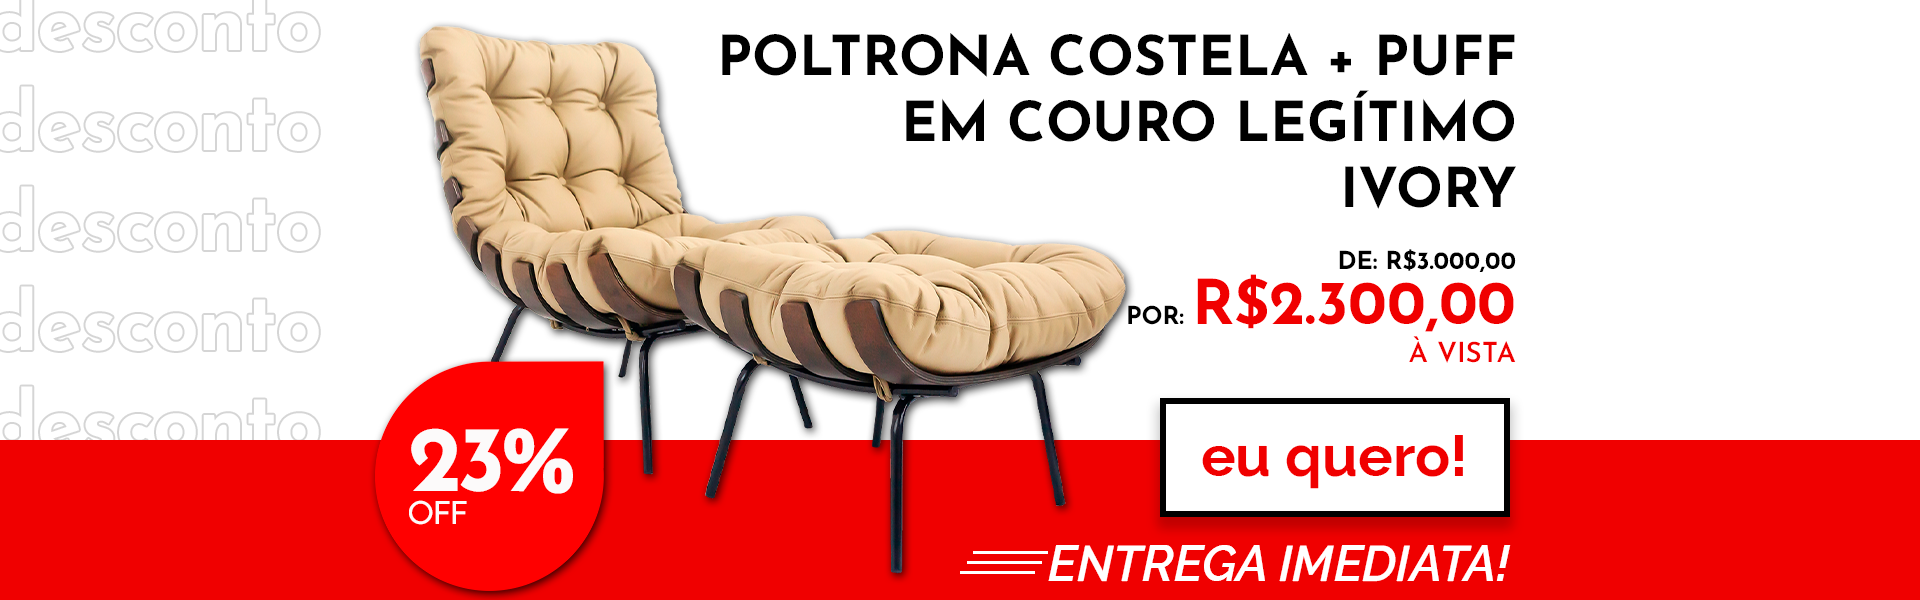 Poltrona + Puff Costela Couro Legítimo - Ivory